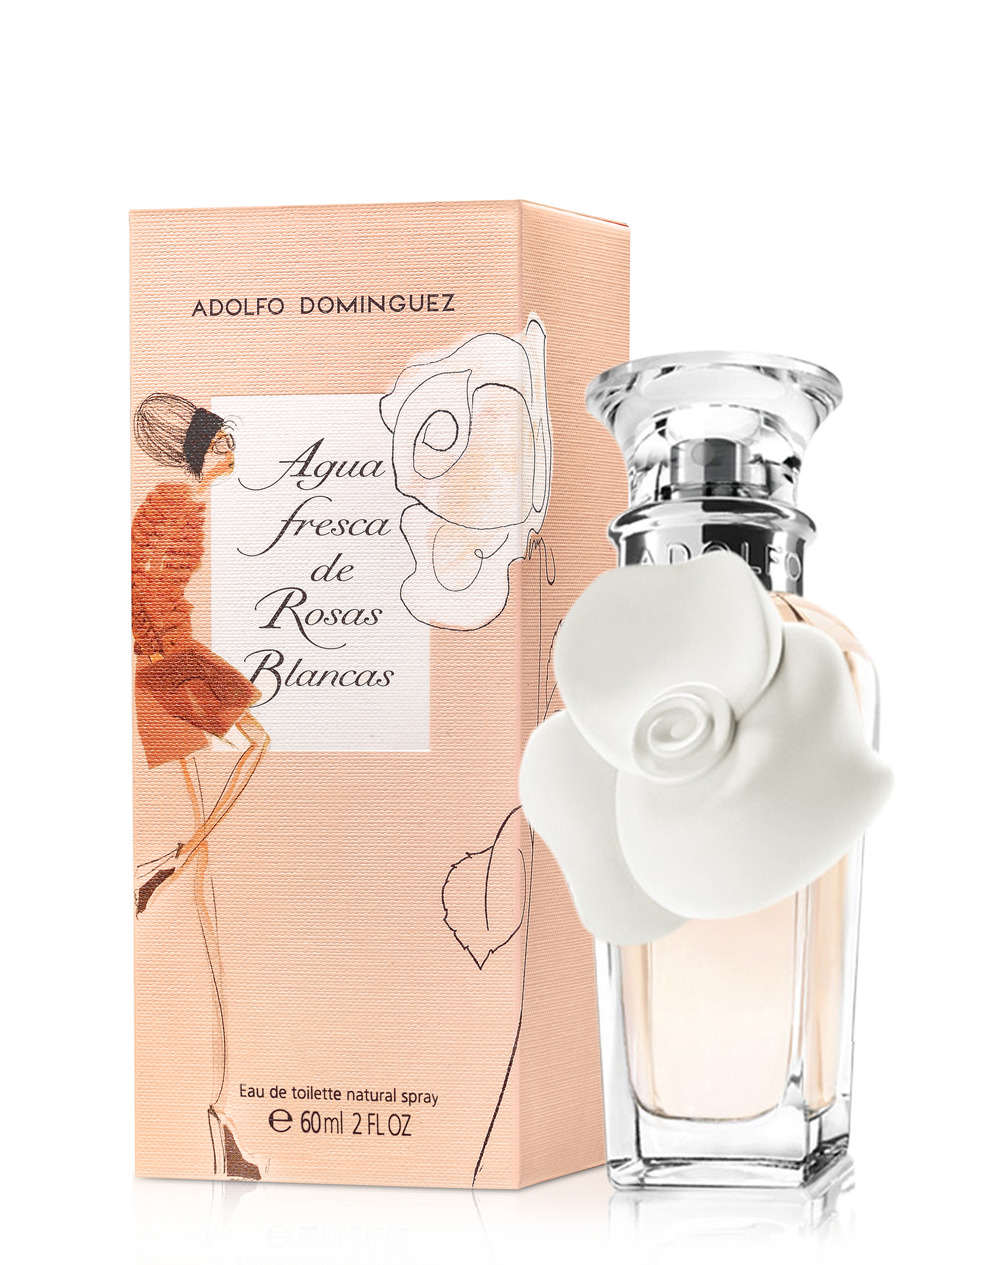 Agua fresca de rosas blancas adolfo dominguez perfume a for Ultimas noticias sobre adolfo dominguez